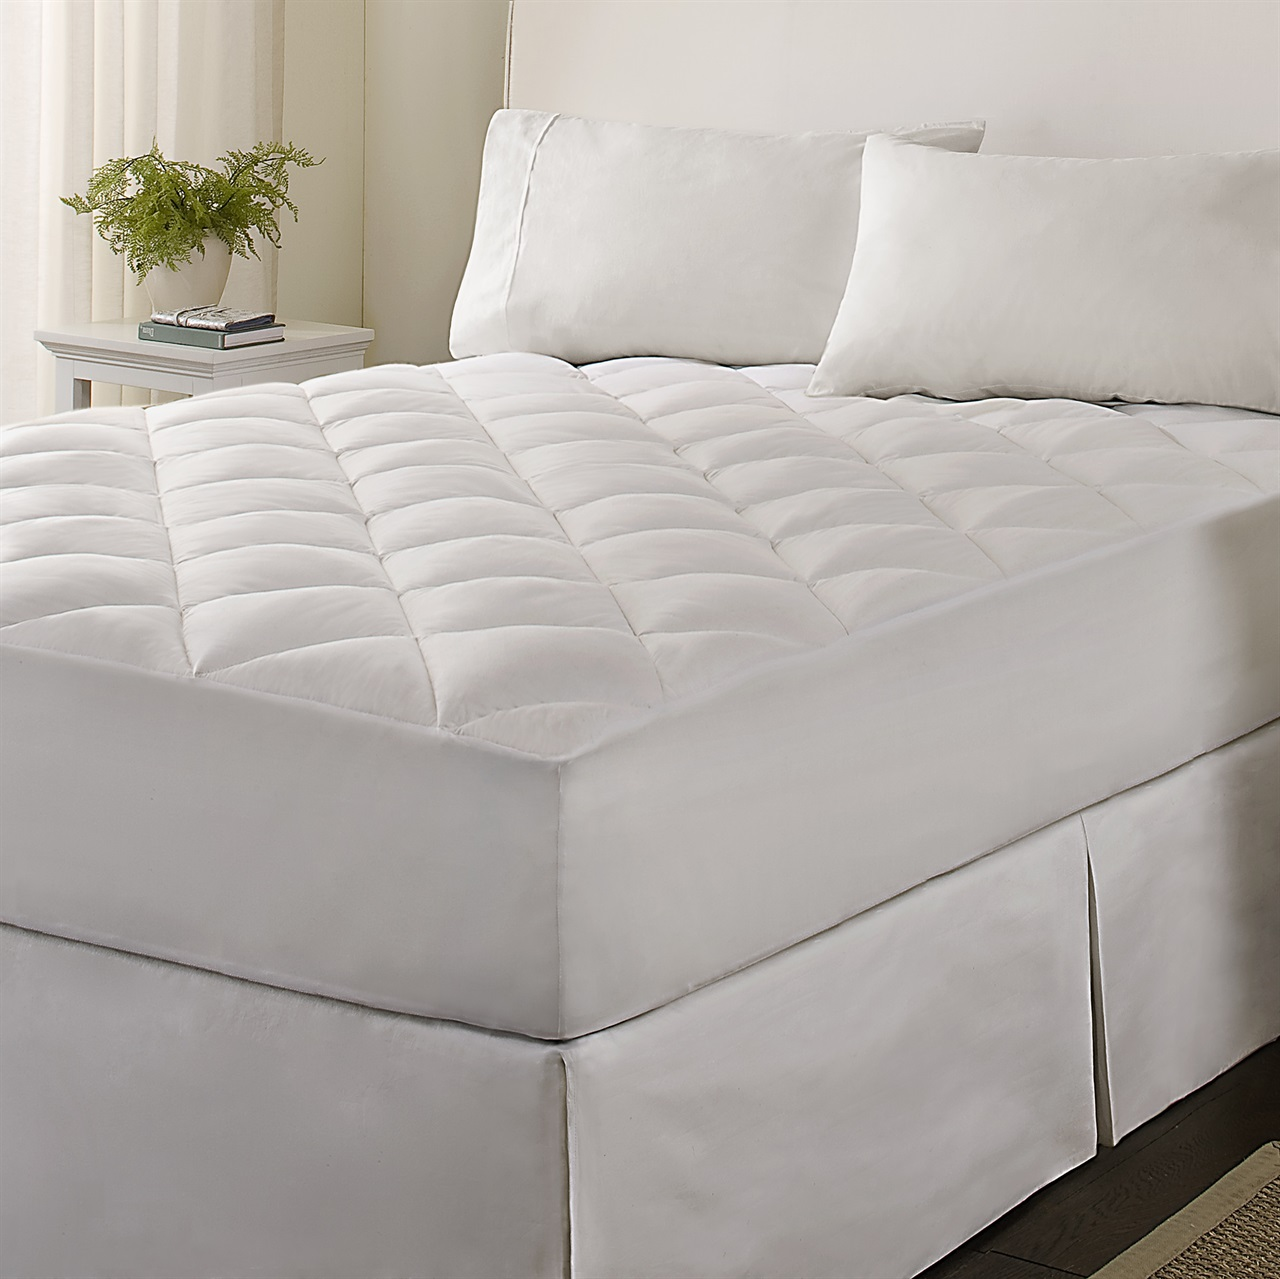 Comfort Beddings 650-Thread Count Attached Waterbed Sheet Set Complete Bedding Option 100% Egyptian Cotton Solid On Amazon